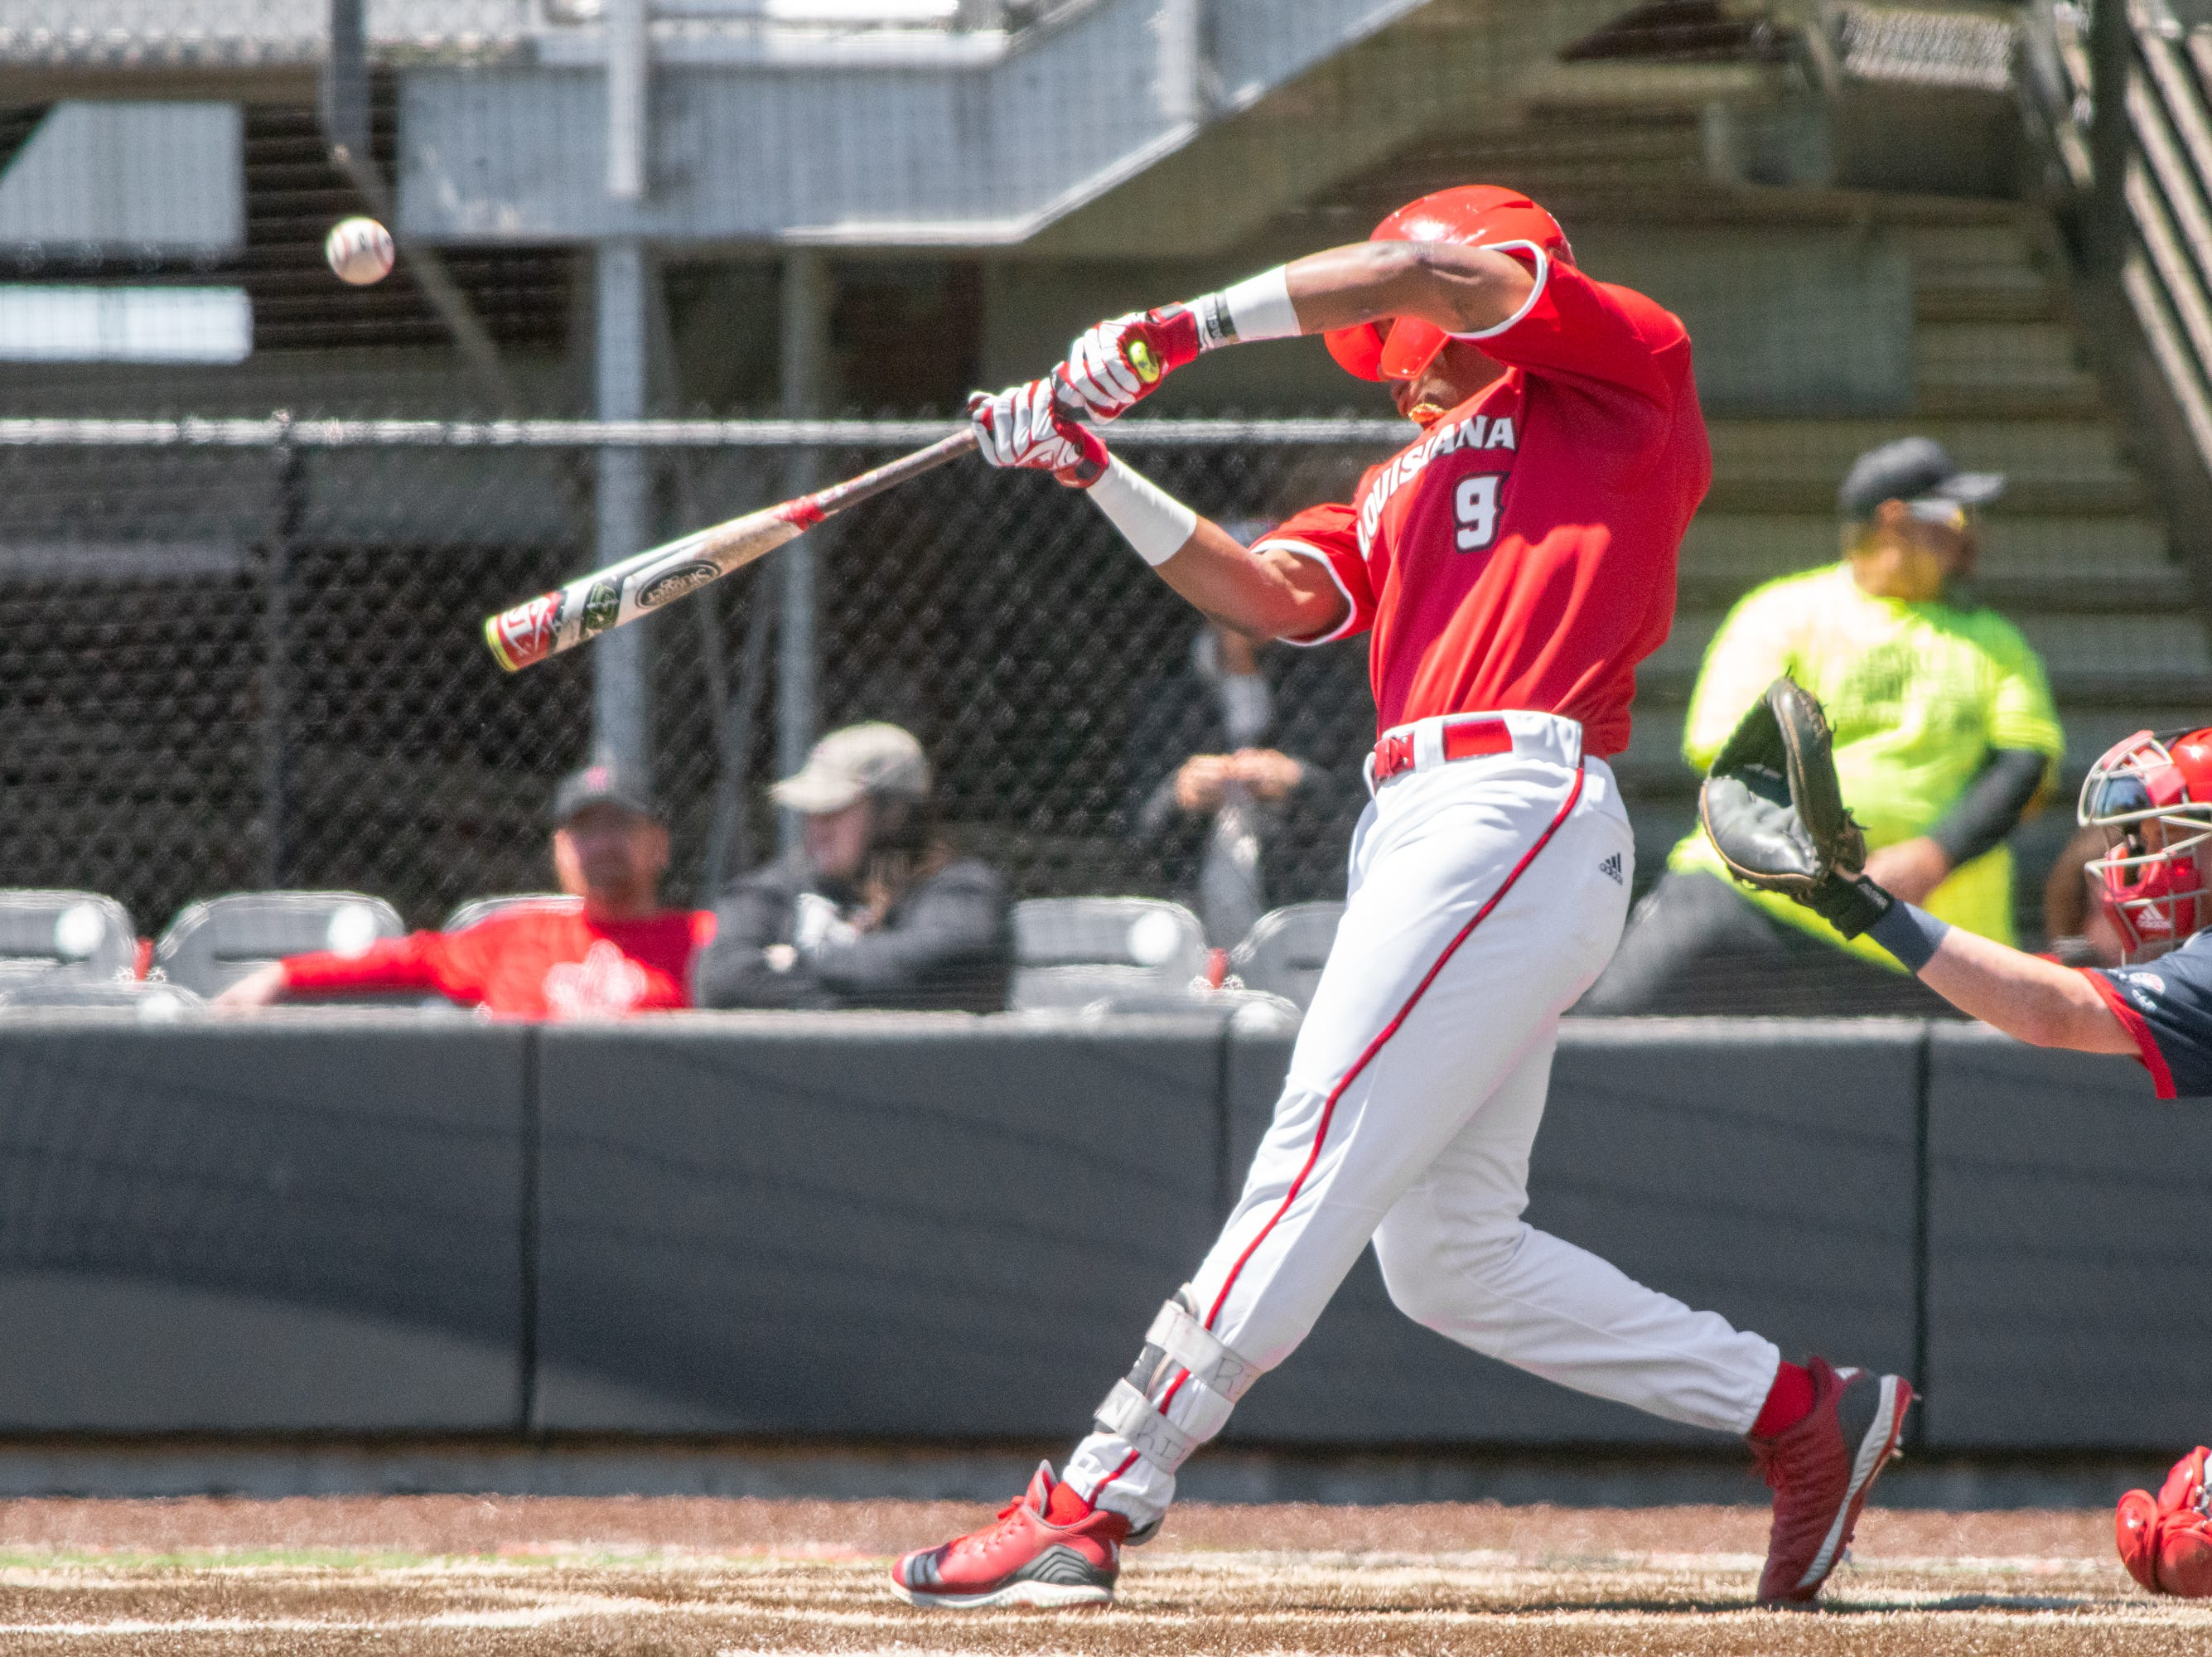 """UL's Todd Lott hits the pitch and scores a solo homerun as the Ragin' Cajuns take on the South Alabama Jaguars at M.L. """"Tigue"""" Moore Field on Sunday, April 14, 2019."""